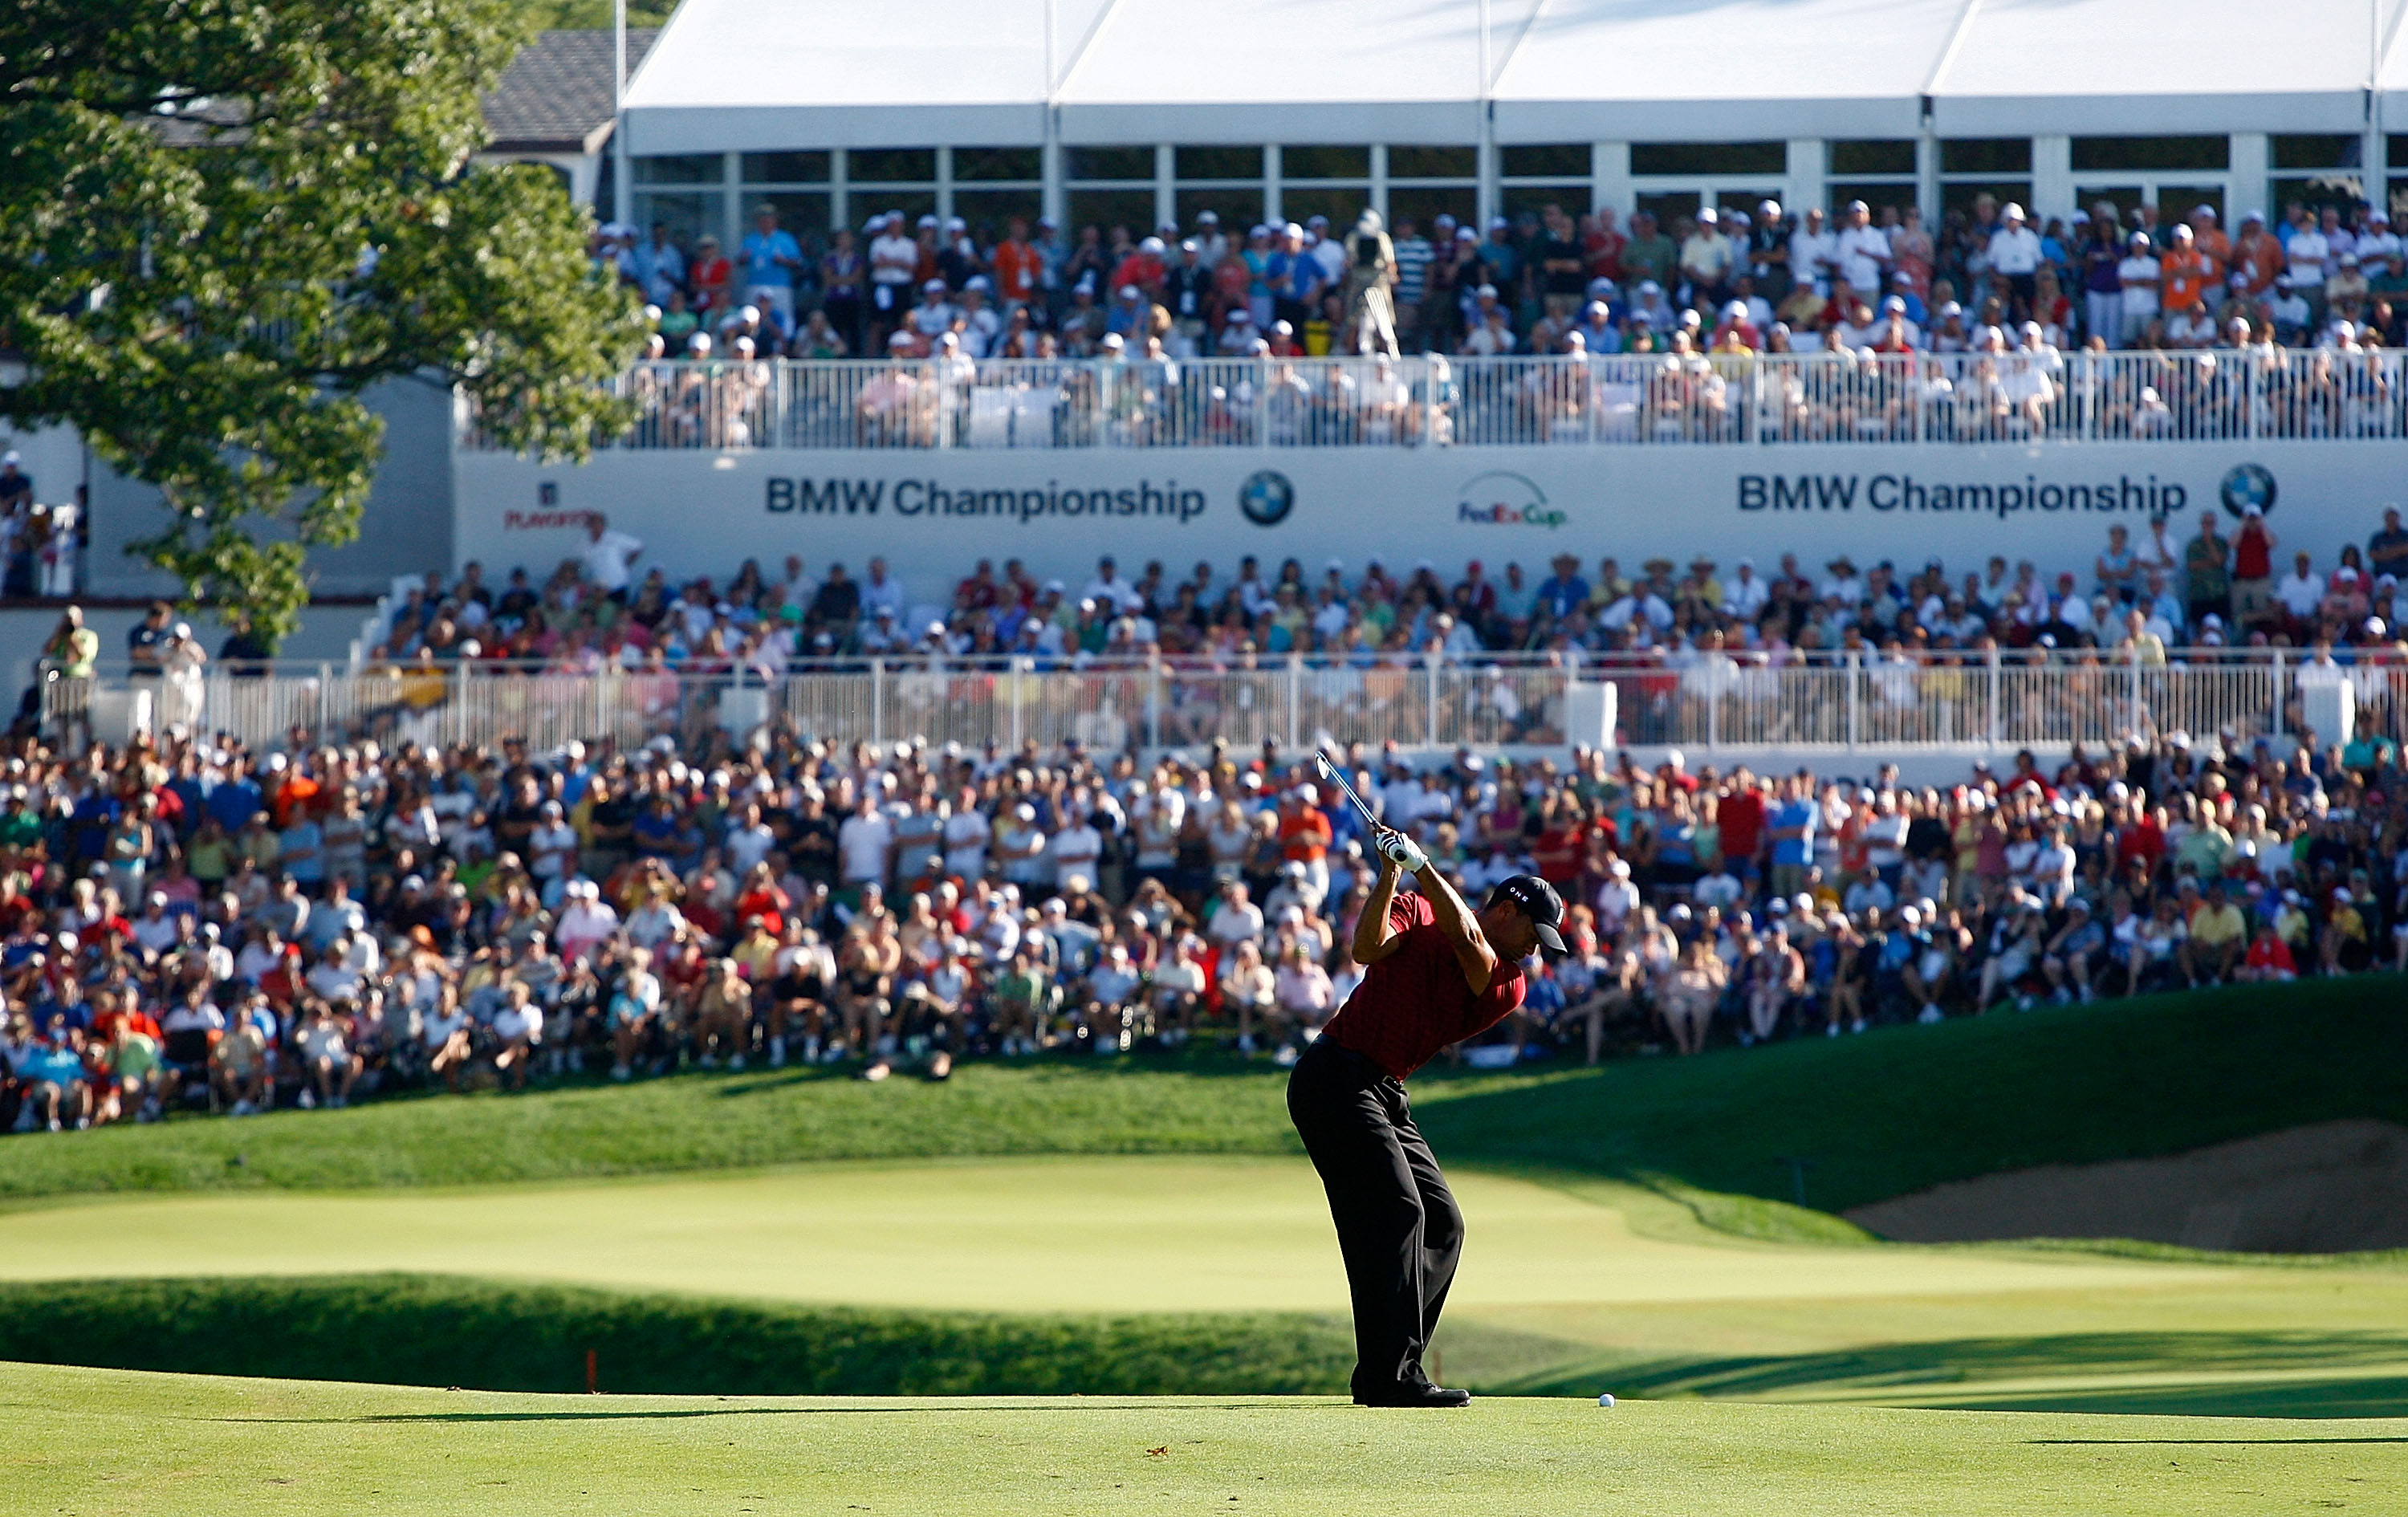 LEMONT, IL - SEPTEMBER 13:  Tiger Woods hits his approach shot to the 18th green during the final round of the BMW Championship held at Cog Hill Golf & CC on September 13, 2009 in Lemont, Illinois.  (Photo by Scott Halleran/Getty Images)